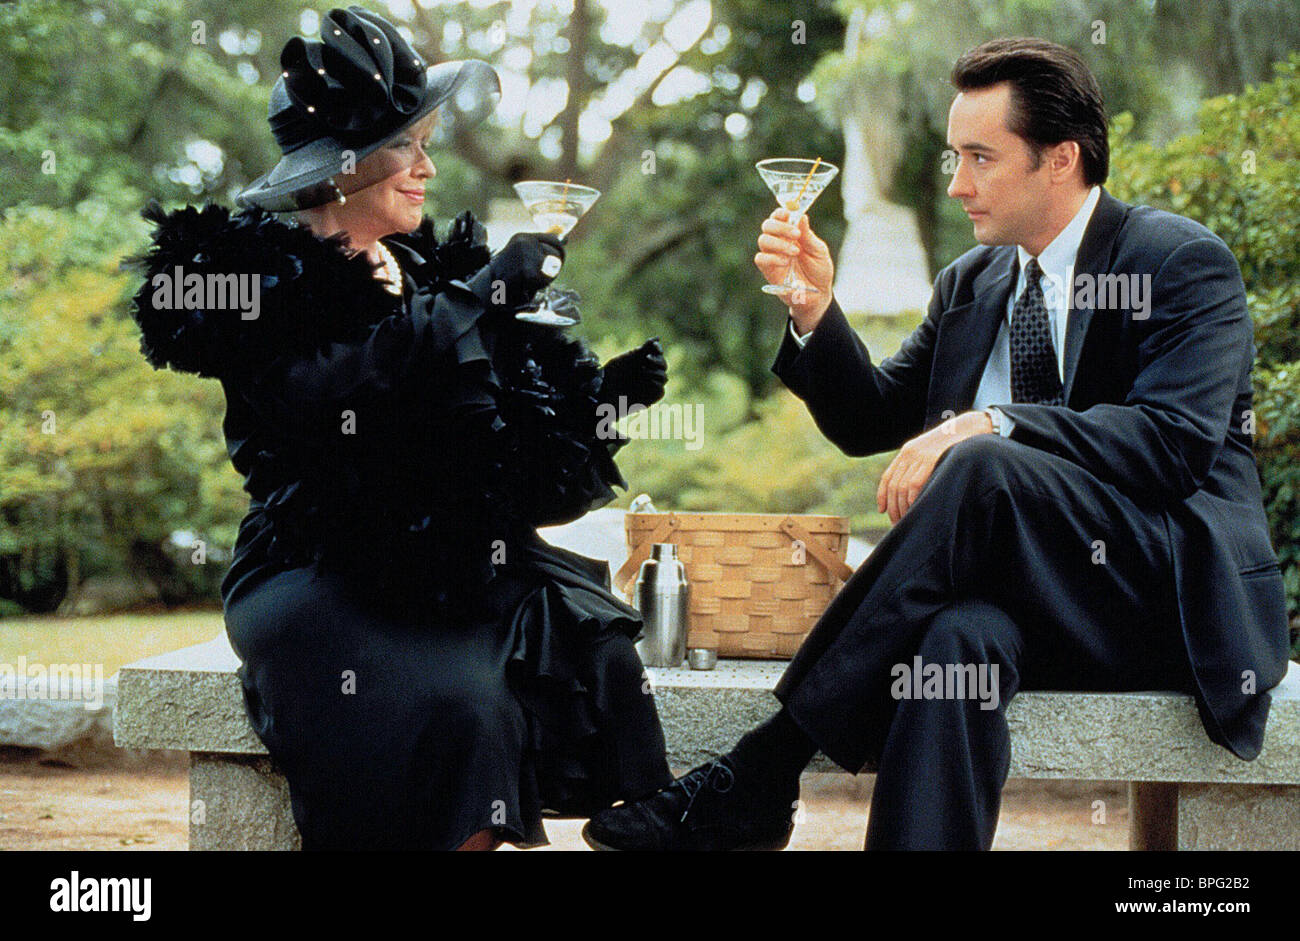 Kim hunter john cusack midnight in the garden of good and evil stock photo 31085910 alamy for Midnight in the garden of evil